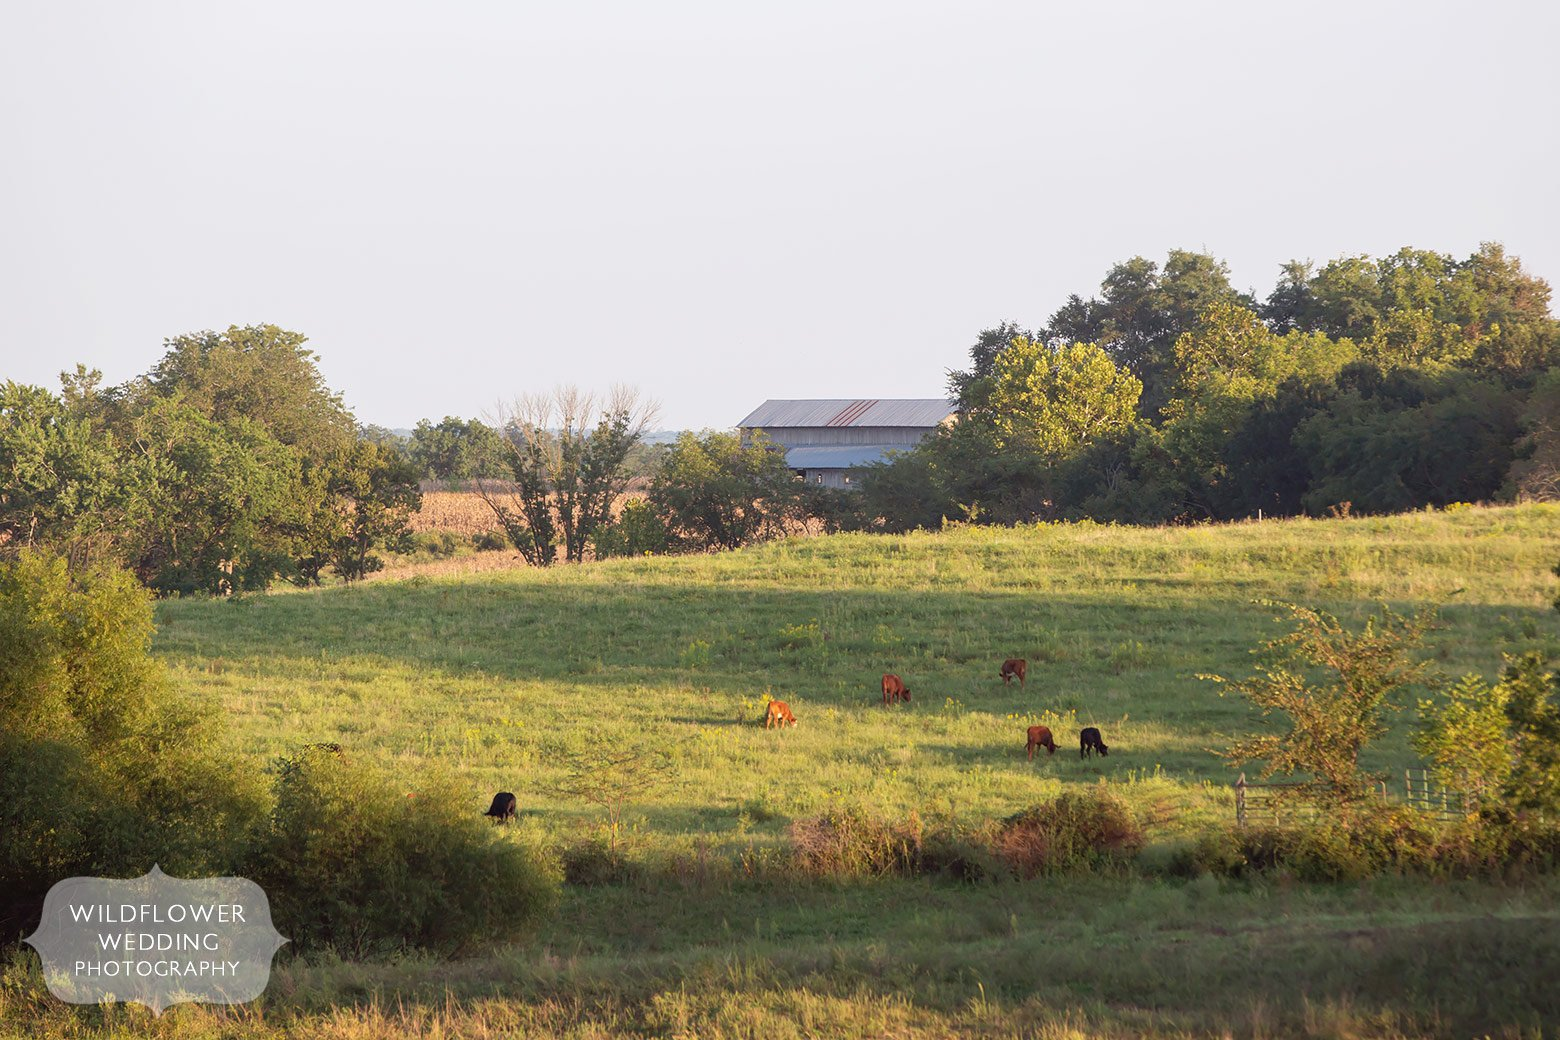 Wedding in field with cows in Mid-Missouri.